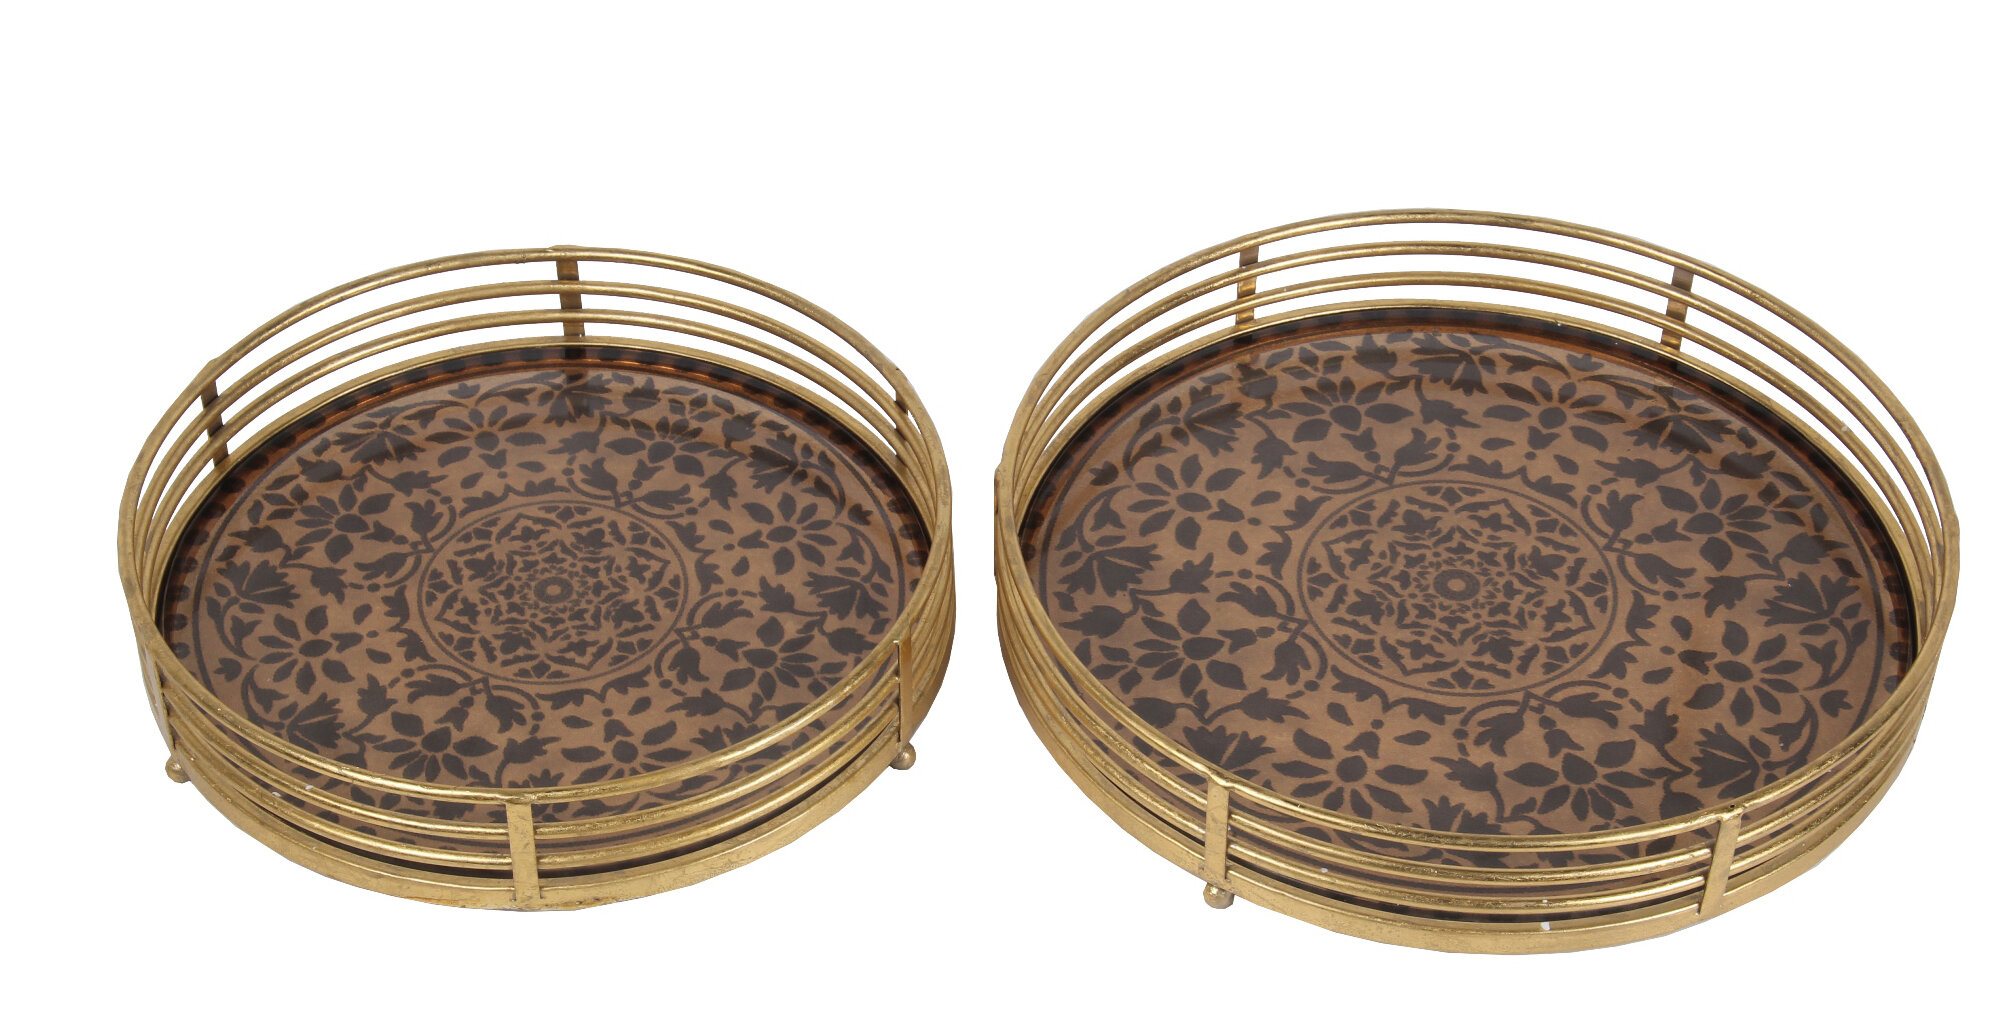 Round World Menagerie Decorative Trays You Ll Love In 2021 Wayfair